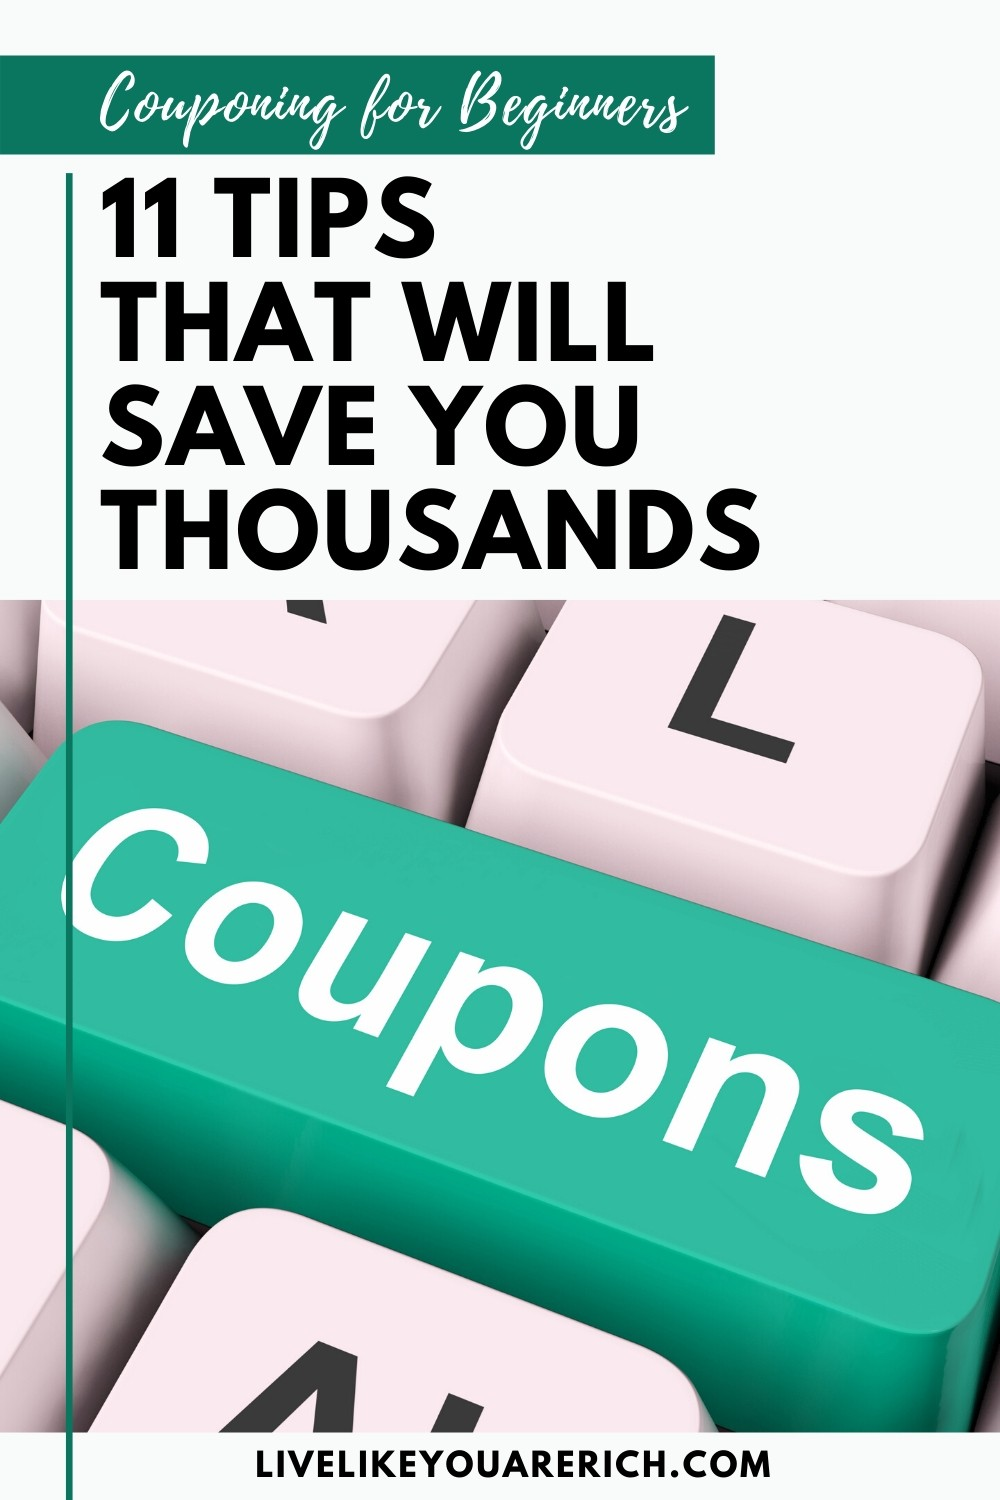 Couponing For Beginners 11 Tips That Will Save You Thousands